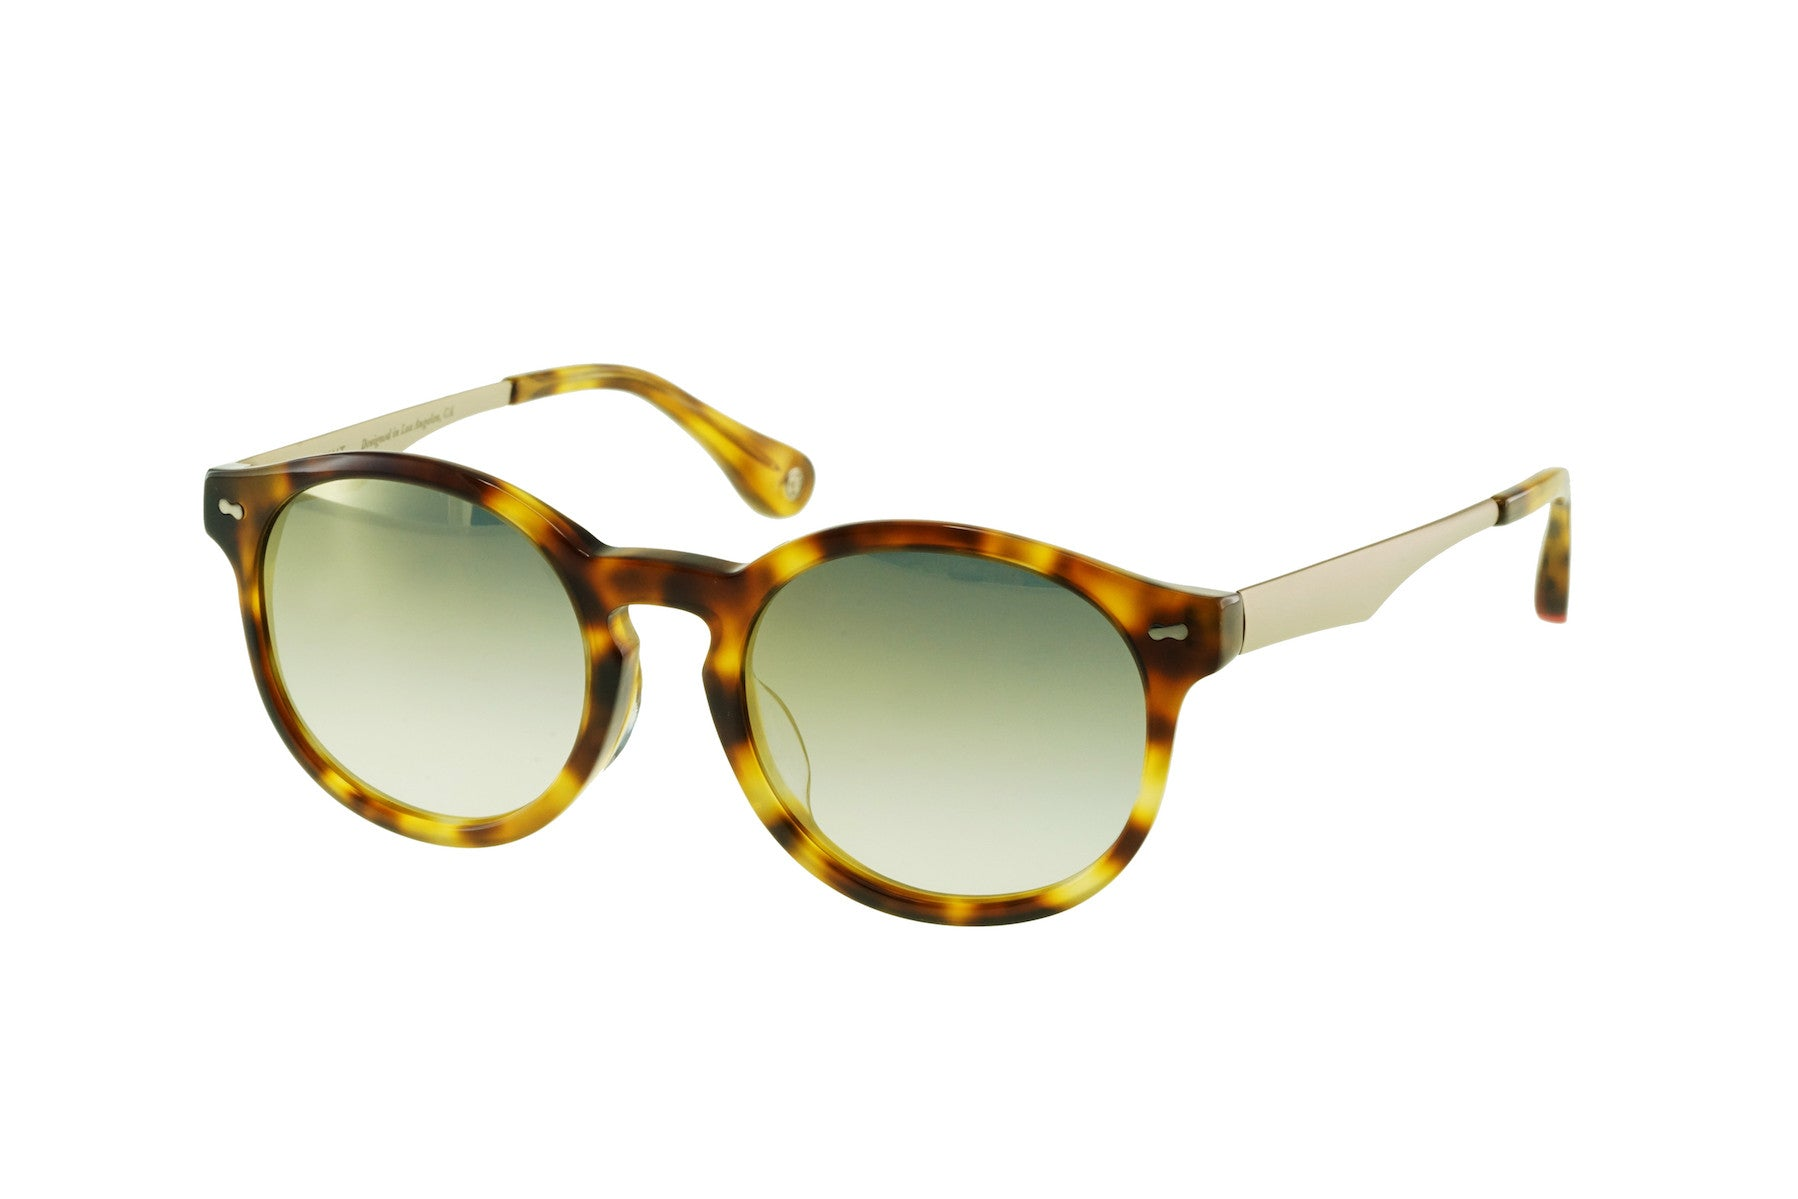 Santa Monica II 728 - Peppertint - Designer sunglasses